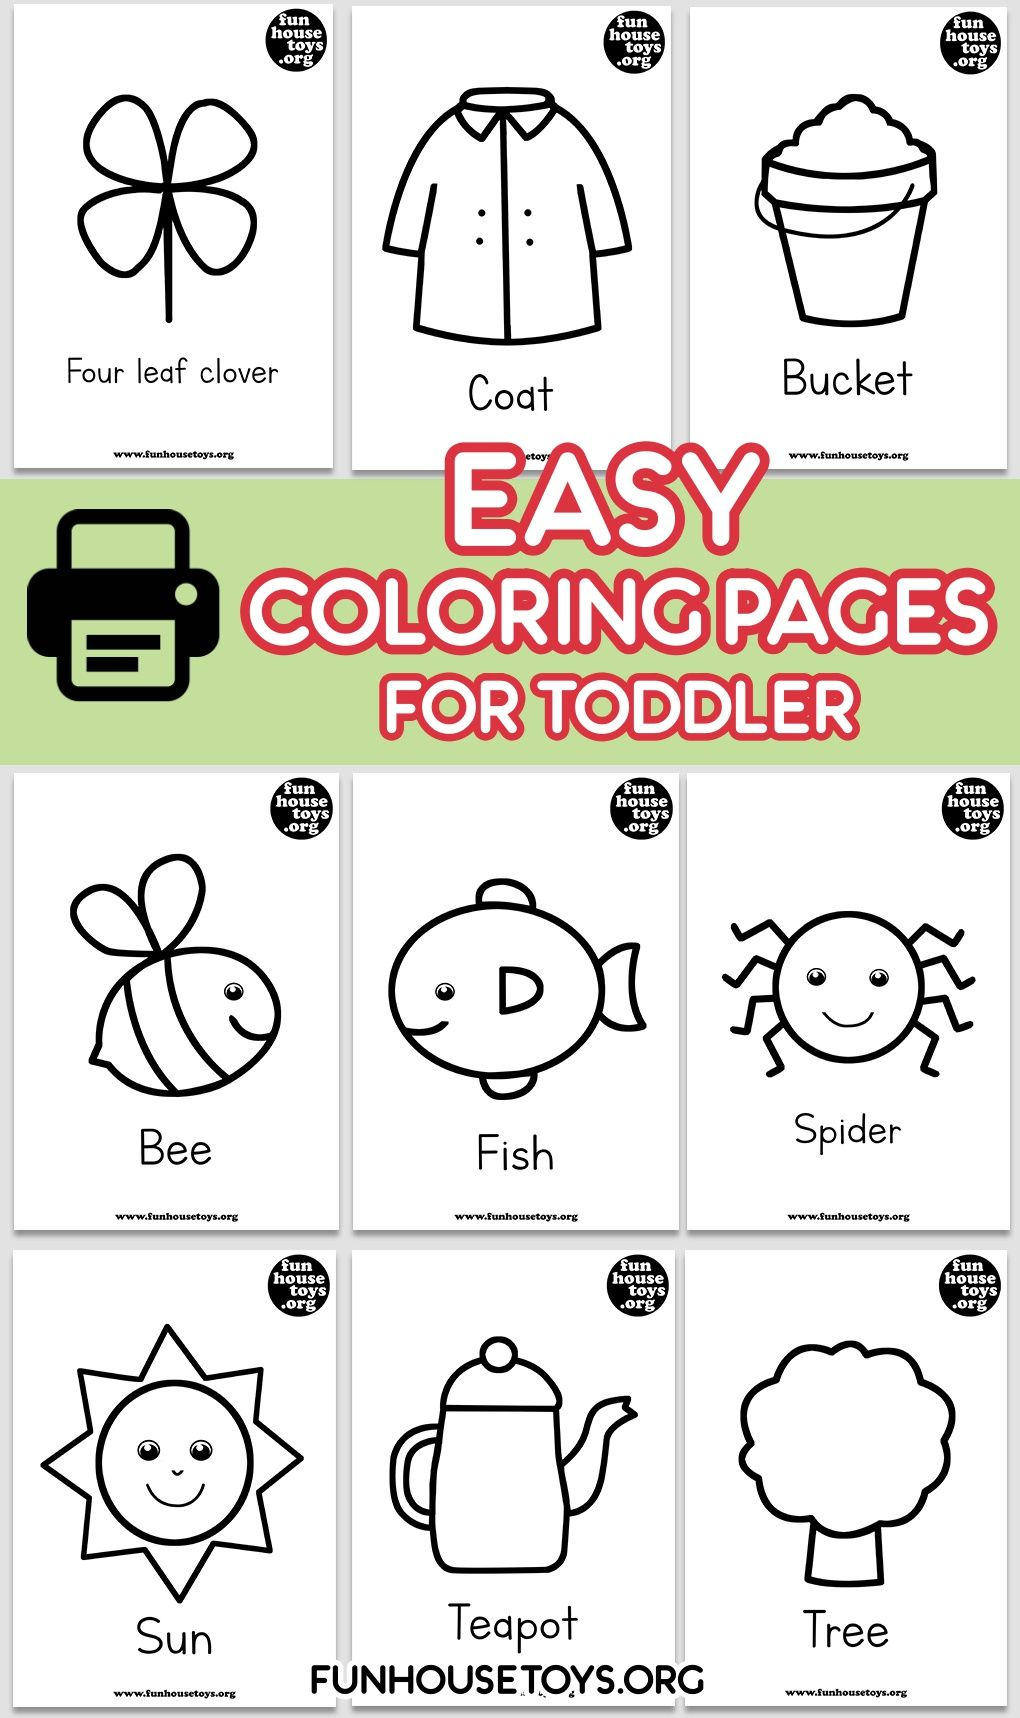 Easy And Simple Coloring Pages For Toddlers Age 2 Years And Up Preschool Activities Printable Preschool Coloring Pages Easy Coloring Pages